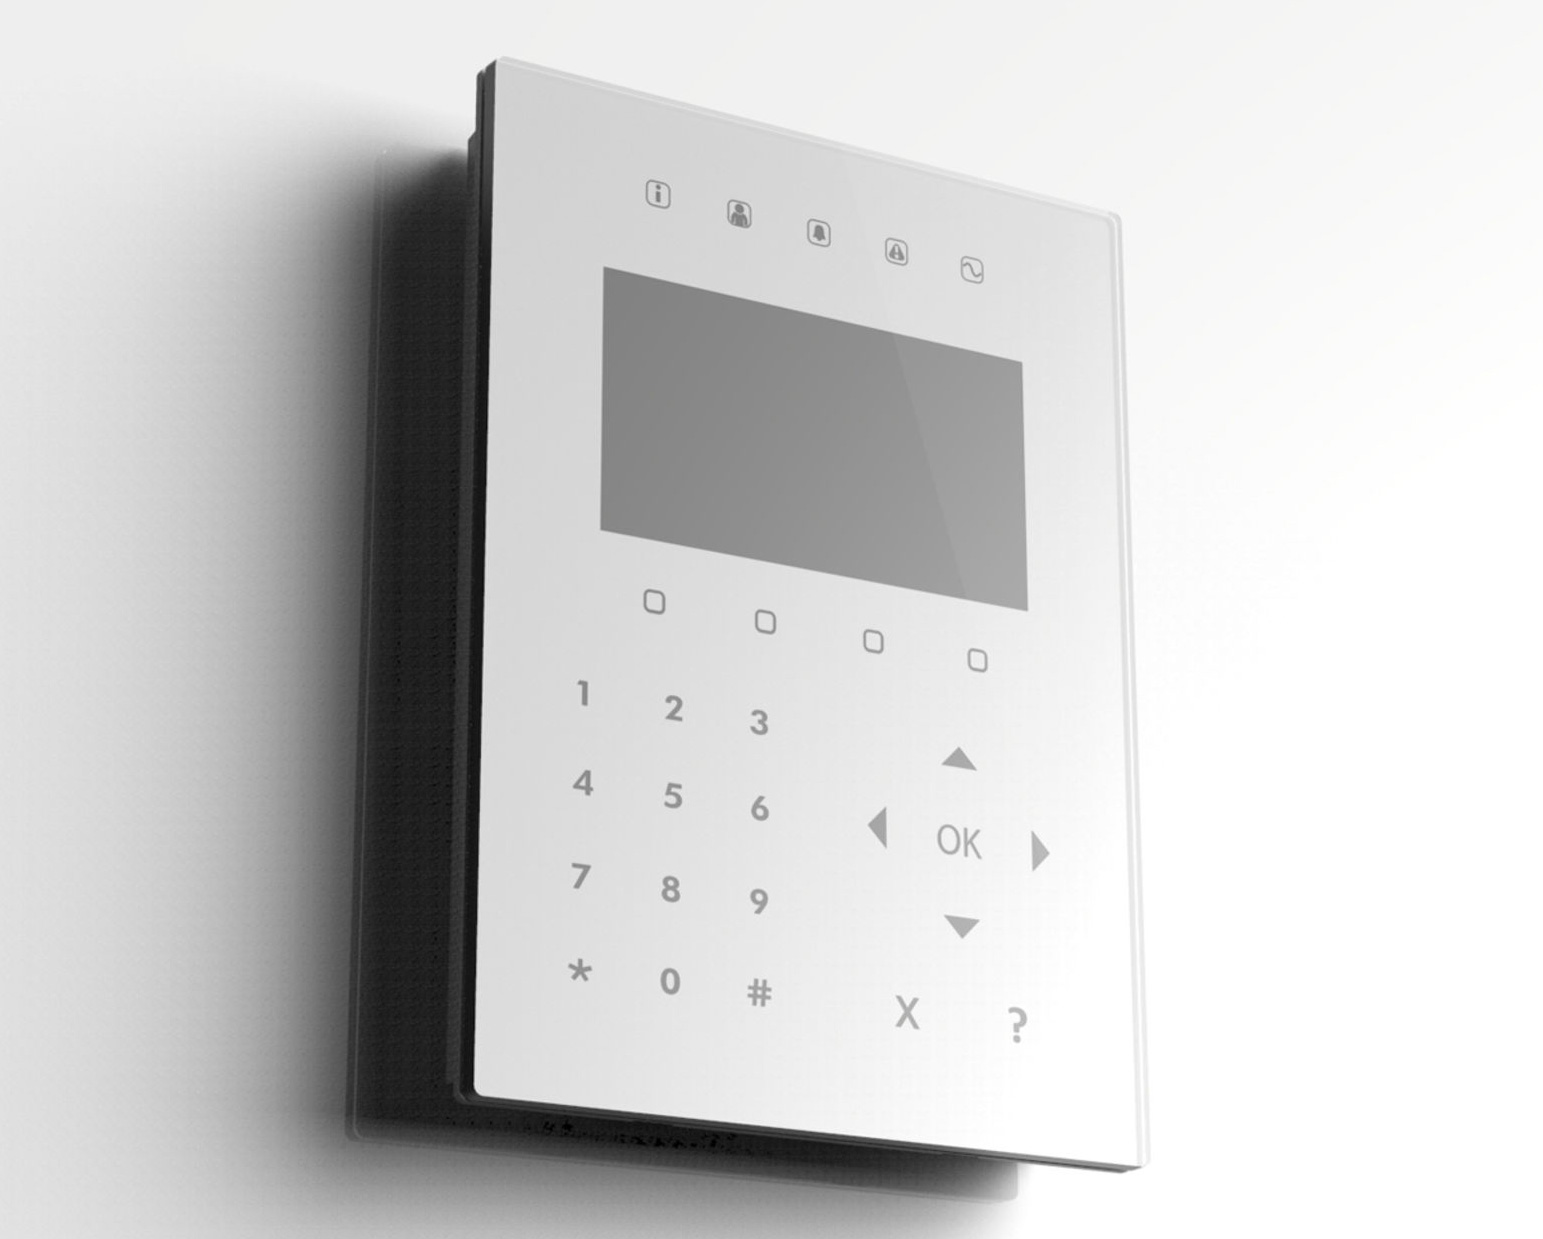 Intrusion Detection Pemac An Expandable Multi Zone Modular Burglar Alarm They Are Designed To Enable Disable Or Partially Disassemble The System From Keyboards You Can Also Exclude Zones View Events Of